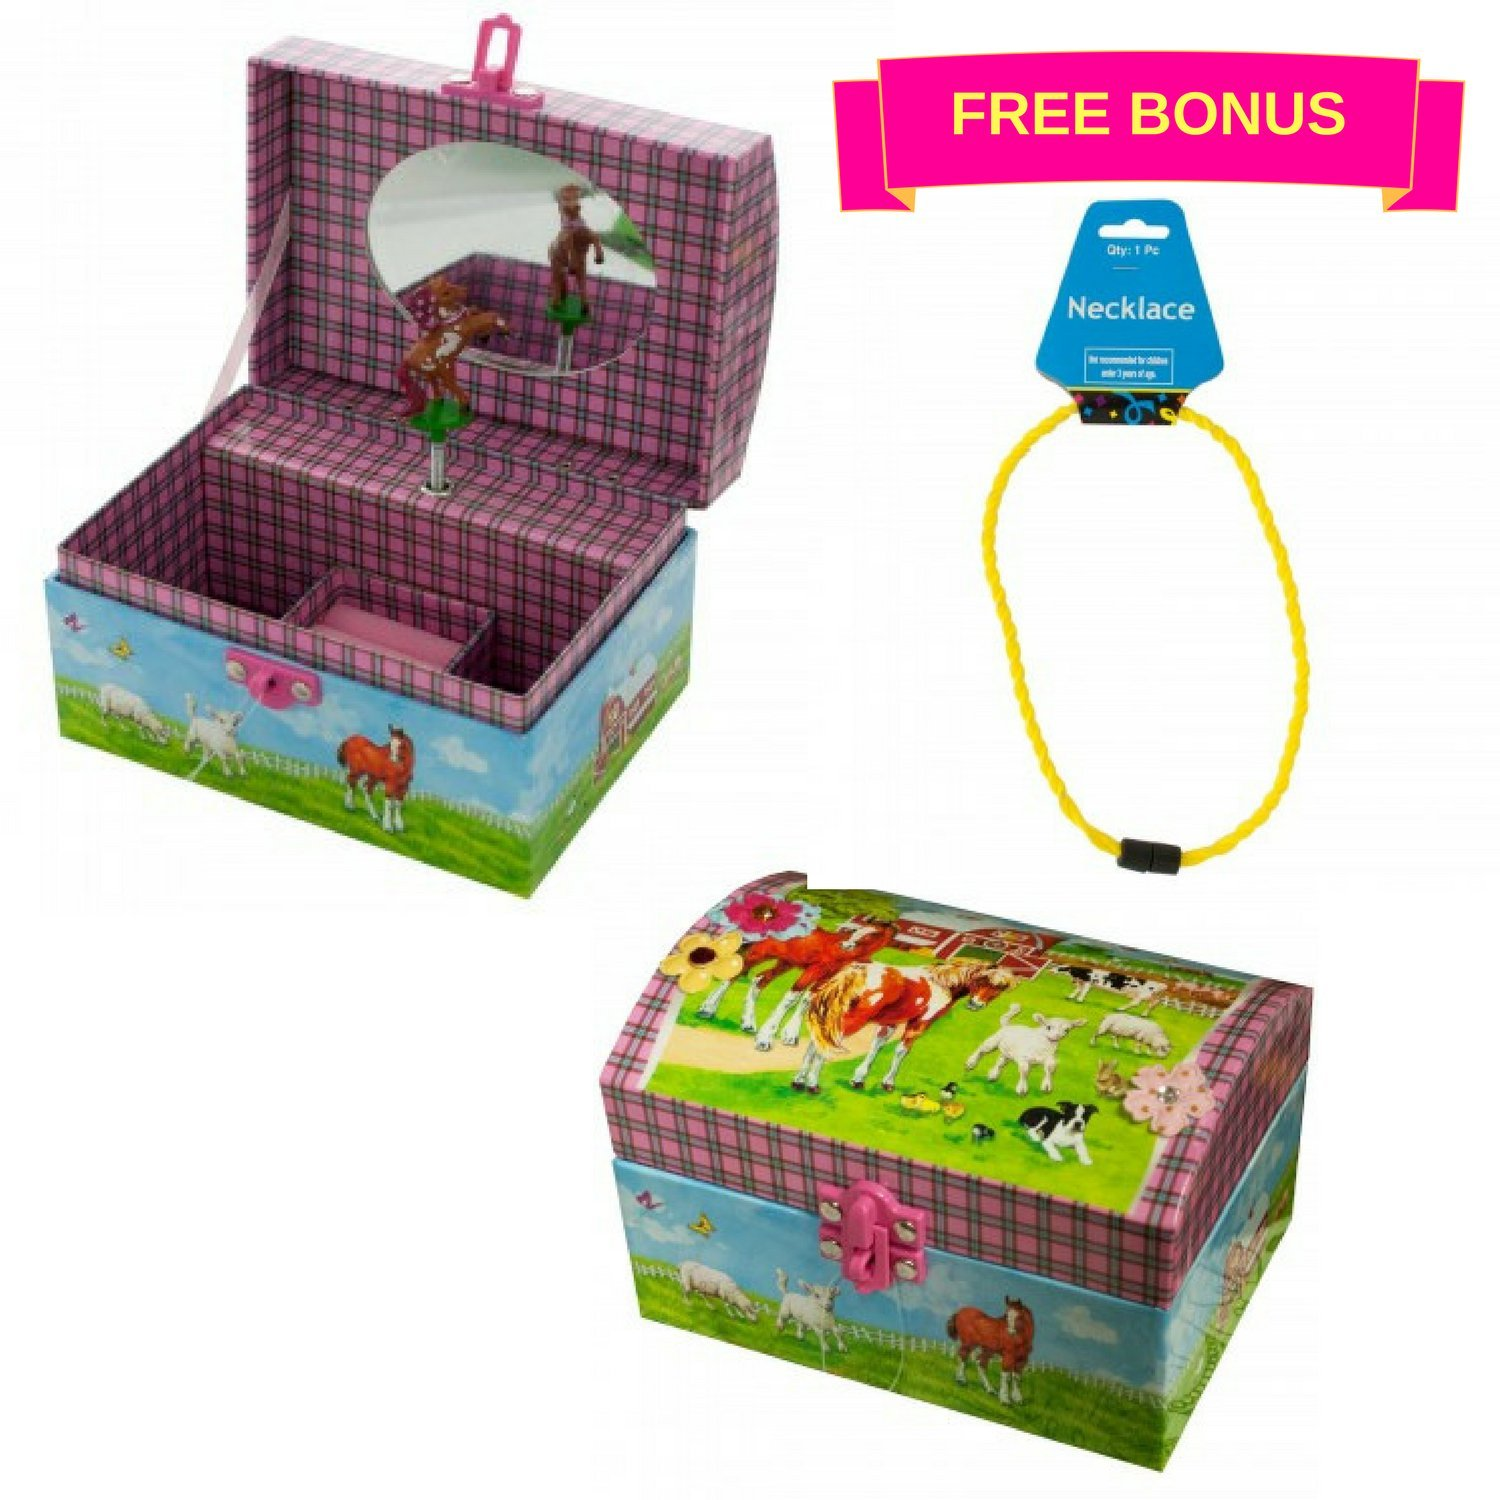 Horse Musical Jewelry Box for Girls - Beautiful Musical Necklace Box that comes with a Free Cool Gifts Yellow Necklace - The Perfect Girl Gifts for Cowgirls and Horse Lovers by BoomBoxHub (Image #2)